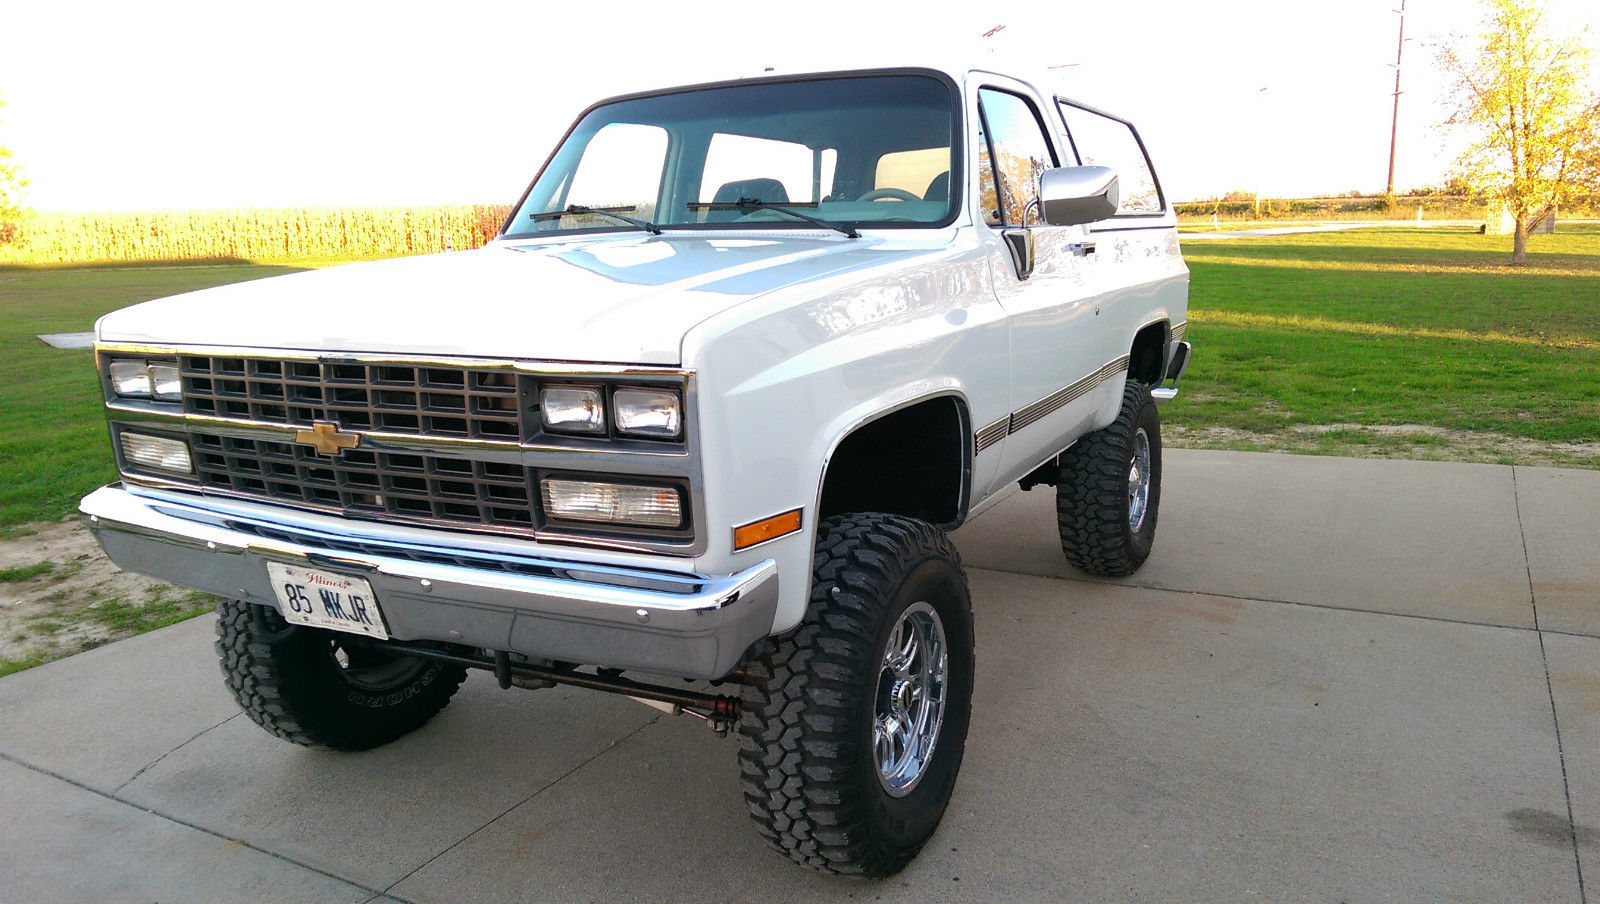 1991 K5 Blazer Classic Chevrolet Blazer 1991 For Sale